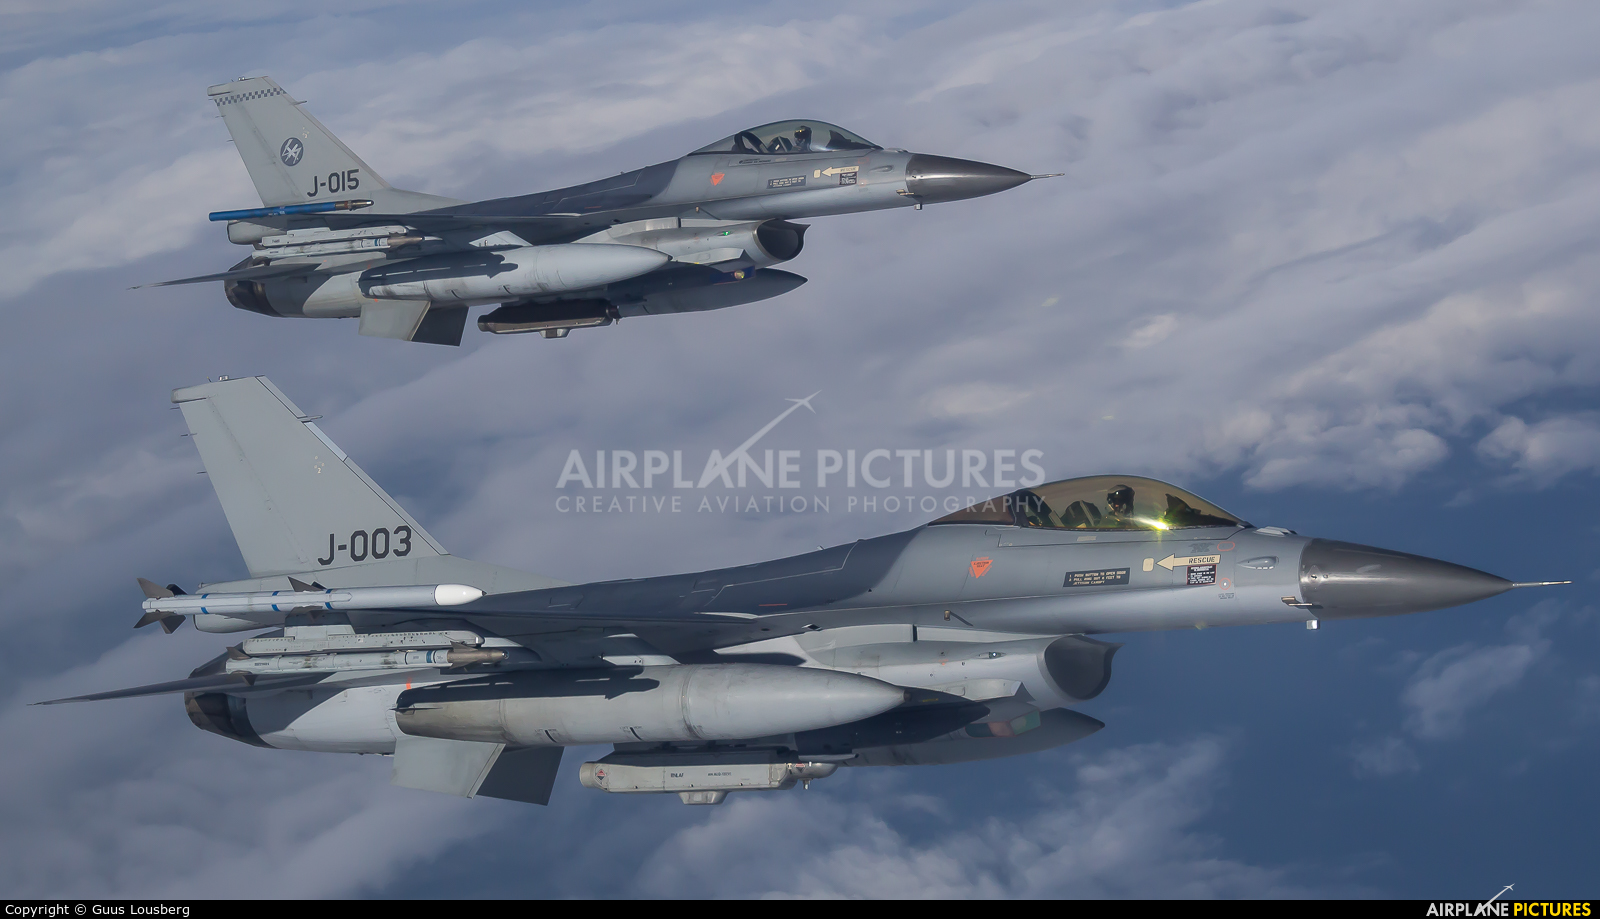 Netherlands - Air Force J-003 aircraft at In Flight - Netherlands